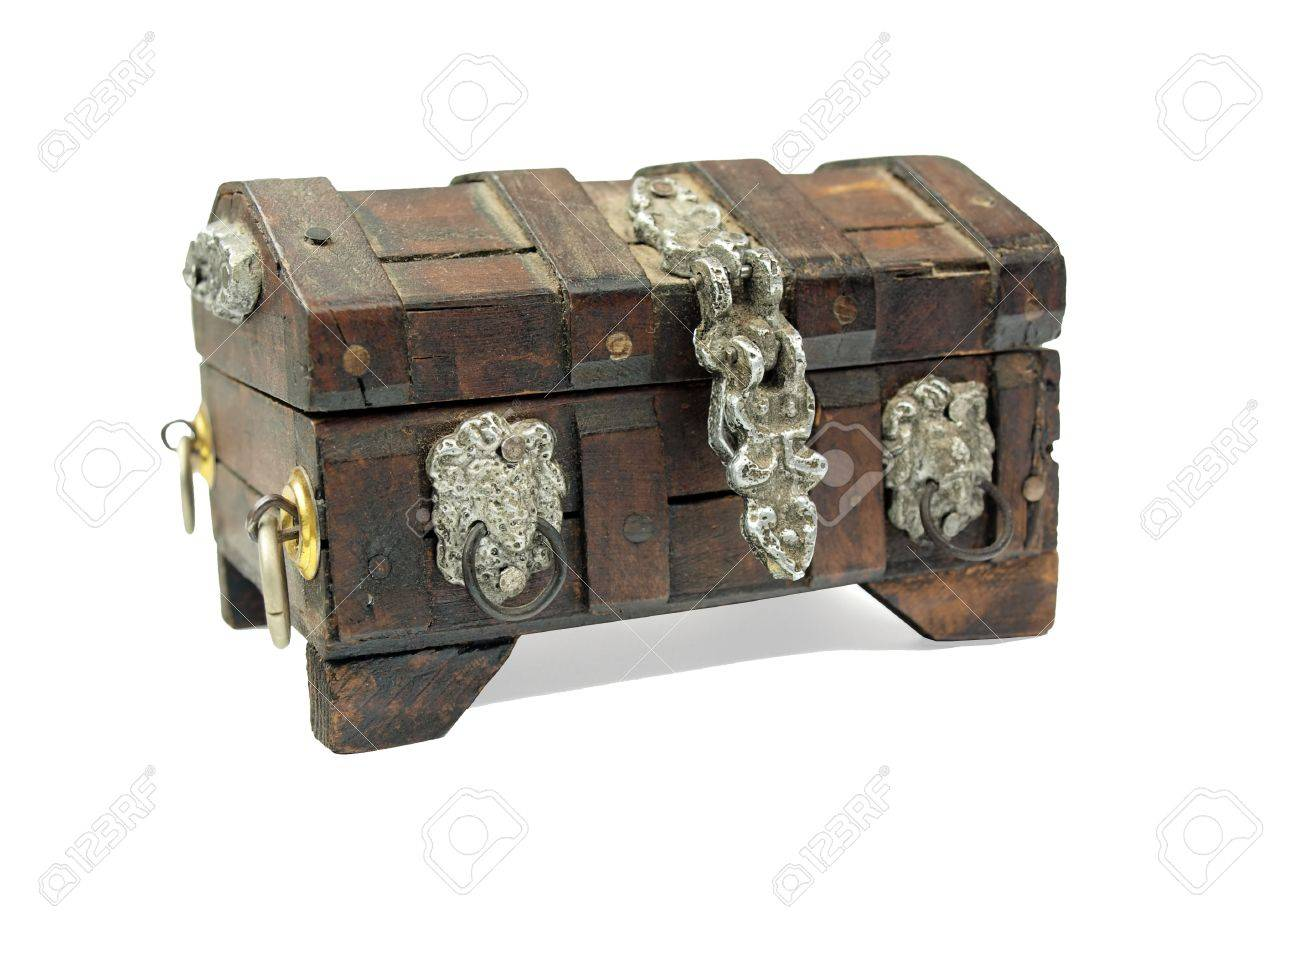 a miniature wooden pirate treasure chest on a white background